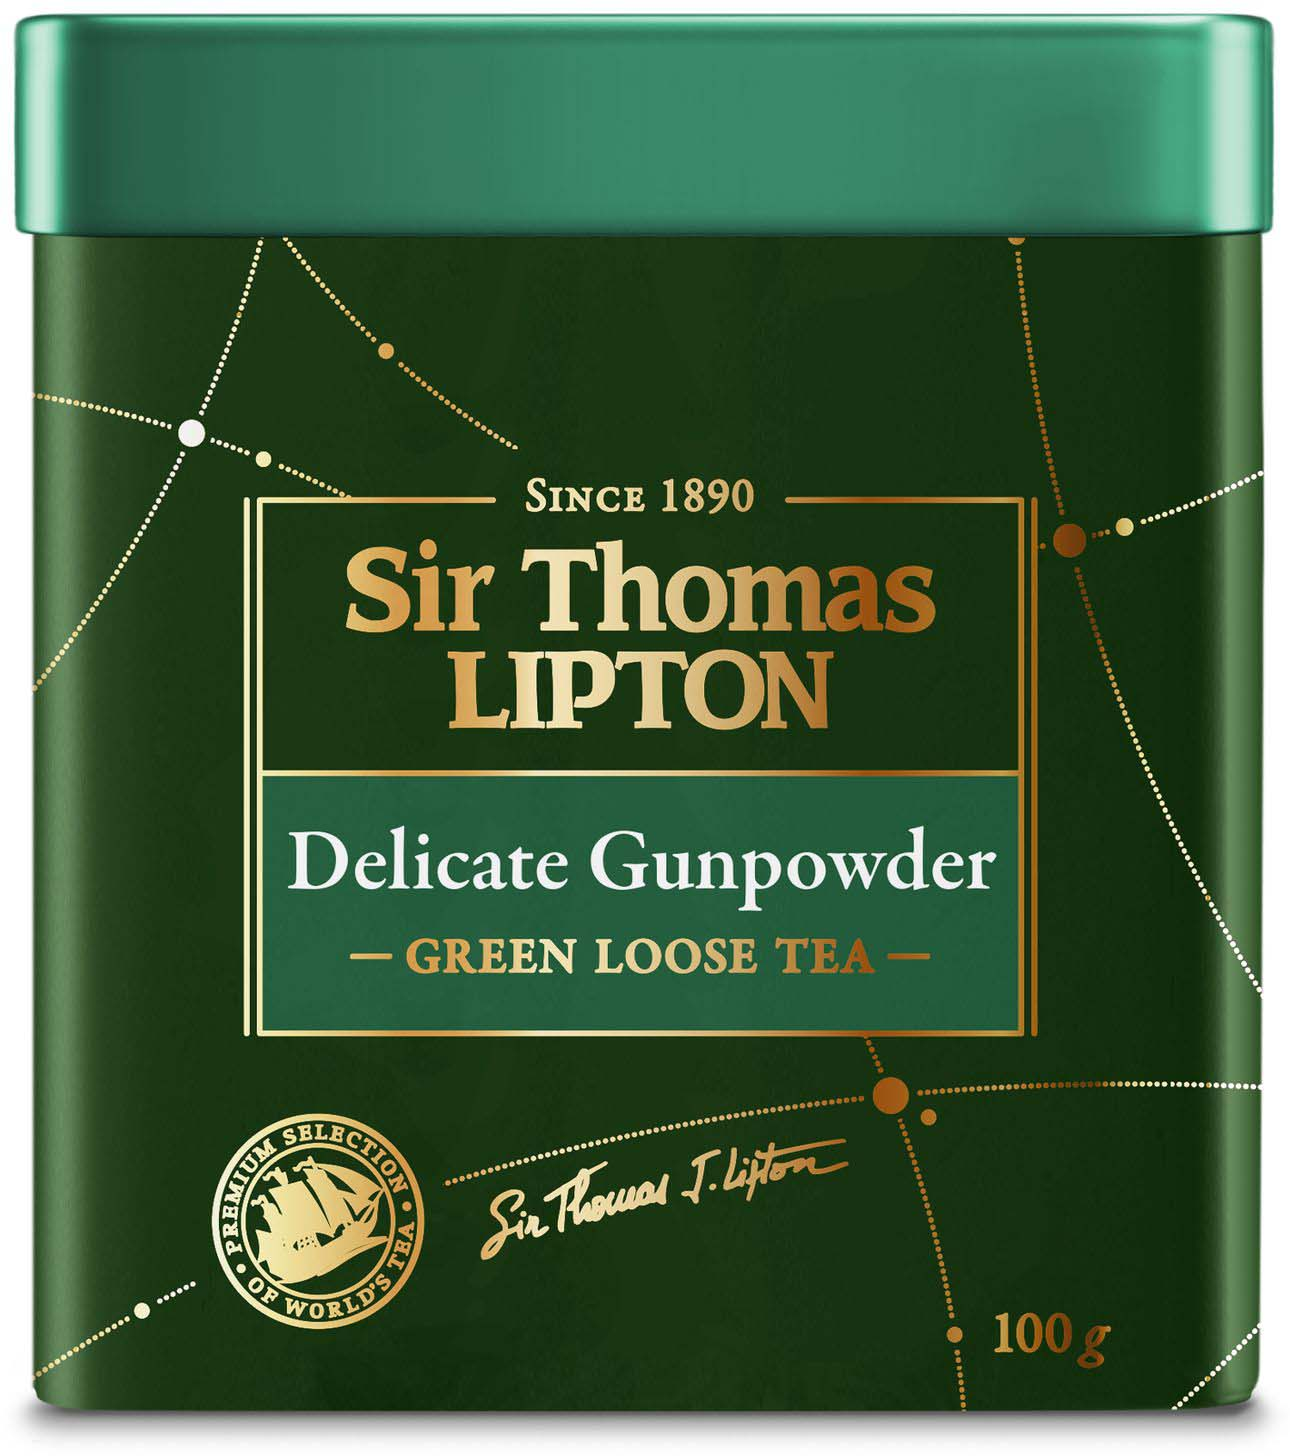 Sir Thomas Lipton Delicate Gunpowder чай зеленый листовой, 100 г gardiner samuel rawson what gunpowder plot was